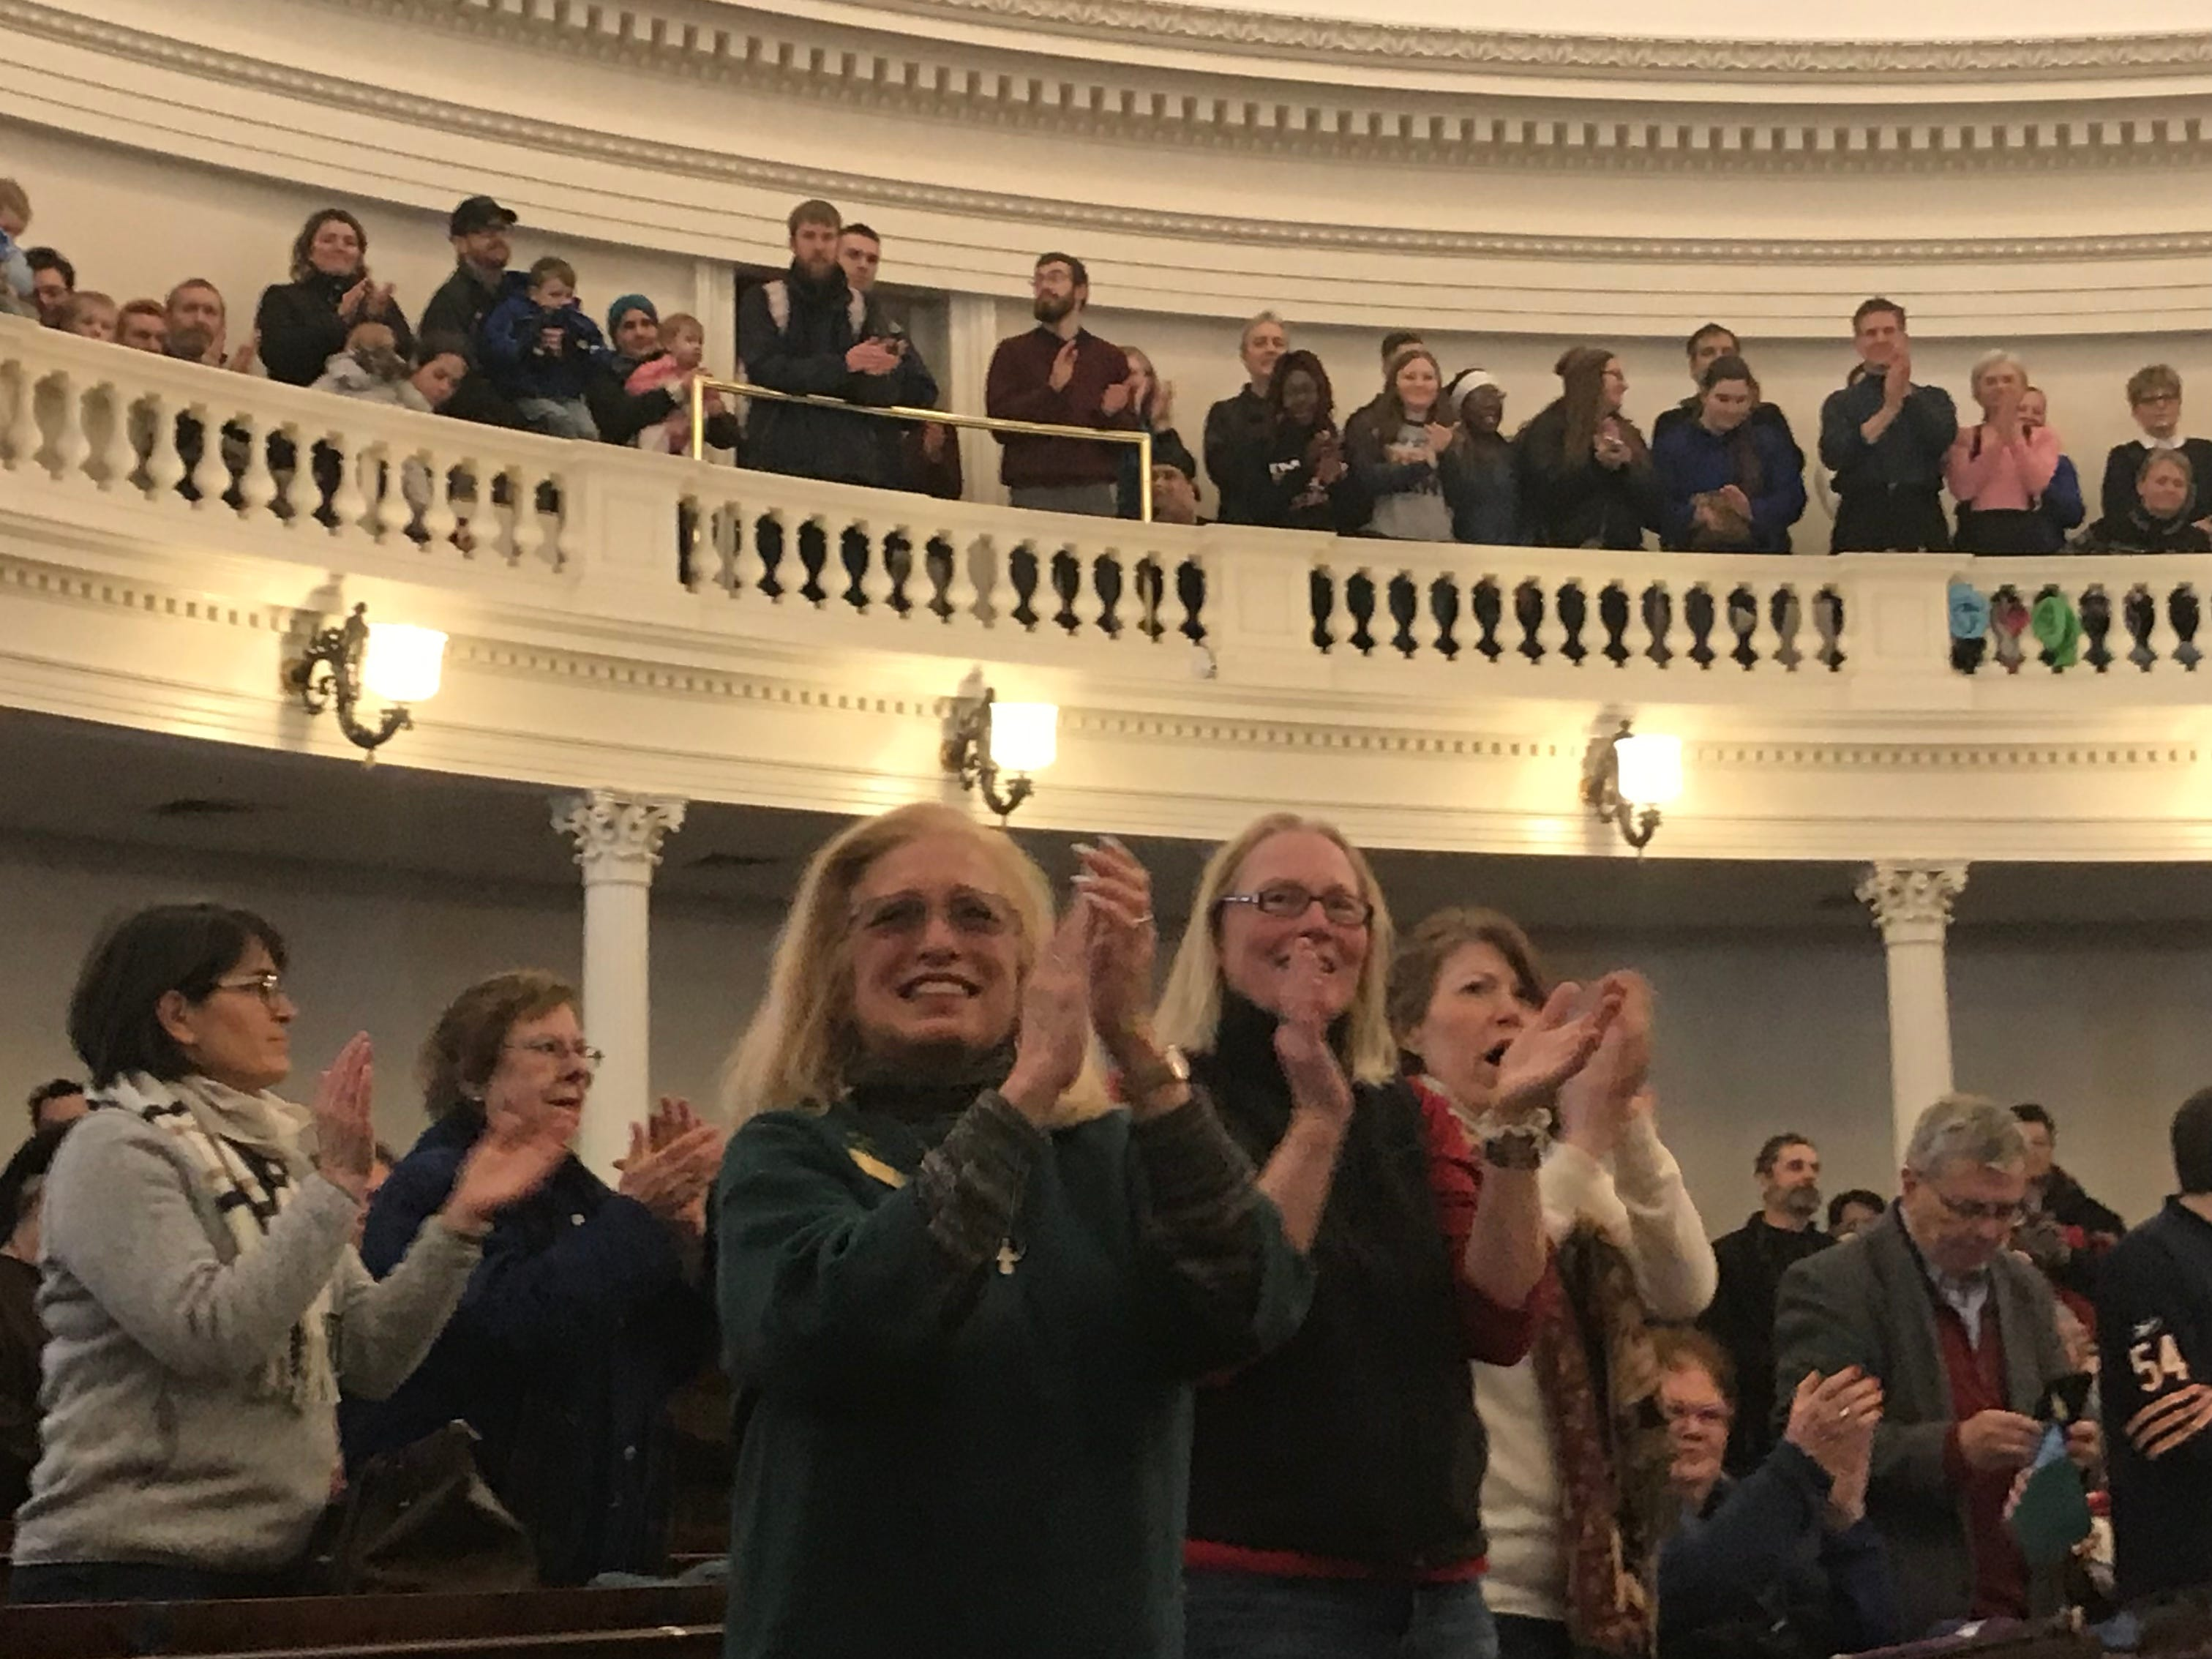 Rep. Mary Ann Morrissey, R-Bennington, was introduced at the anti-abortion rally in Montpelier on Jan. 26, 2019 as a supporter of Right to Life Vermont.